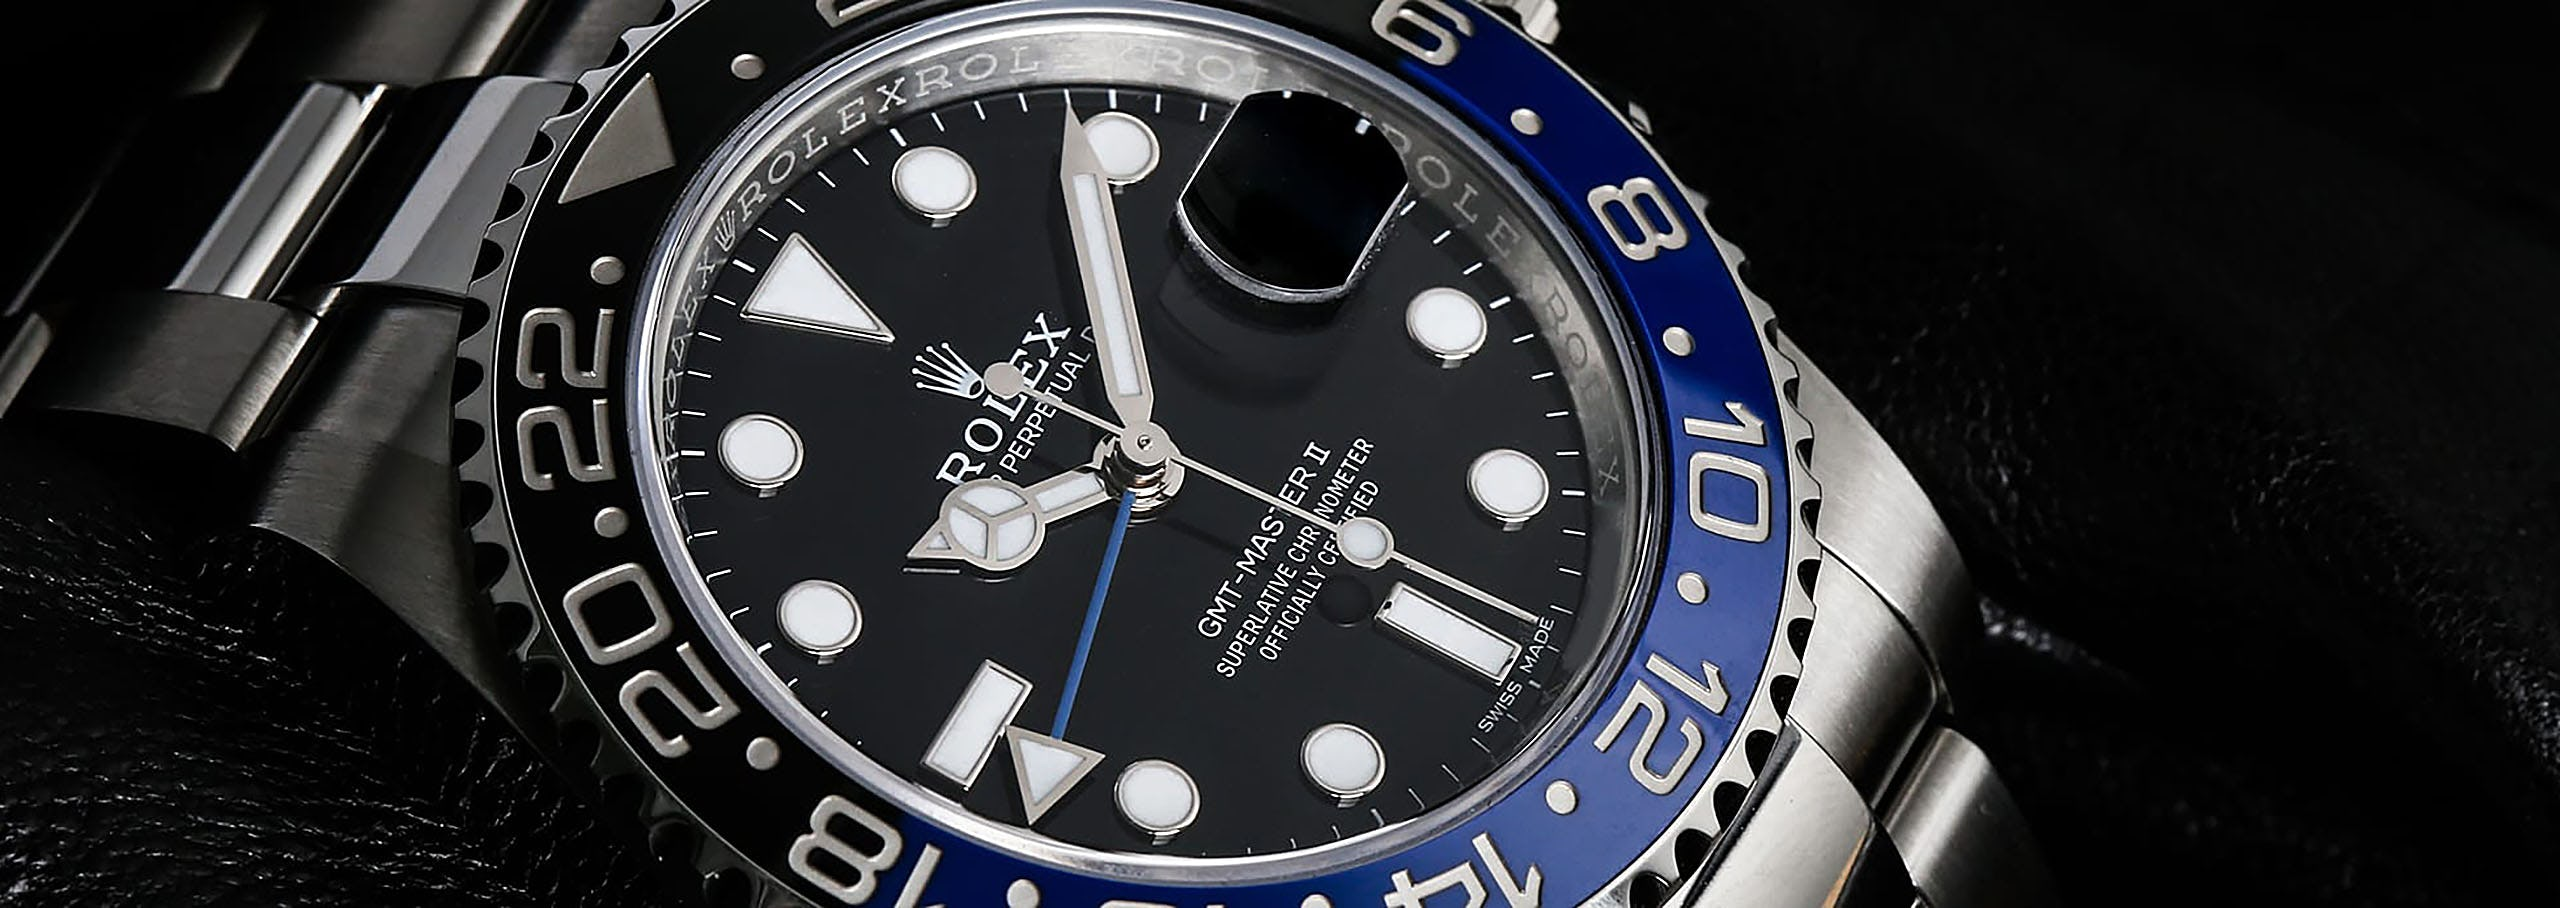 Everything You Need to Know About the Rolex GMT-Master II